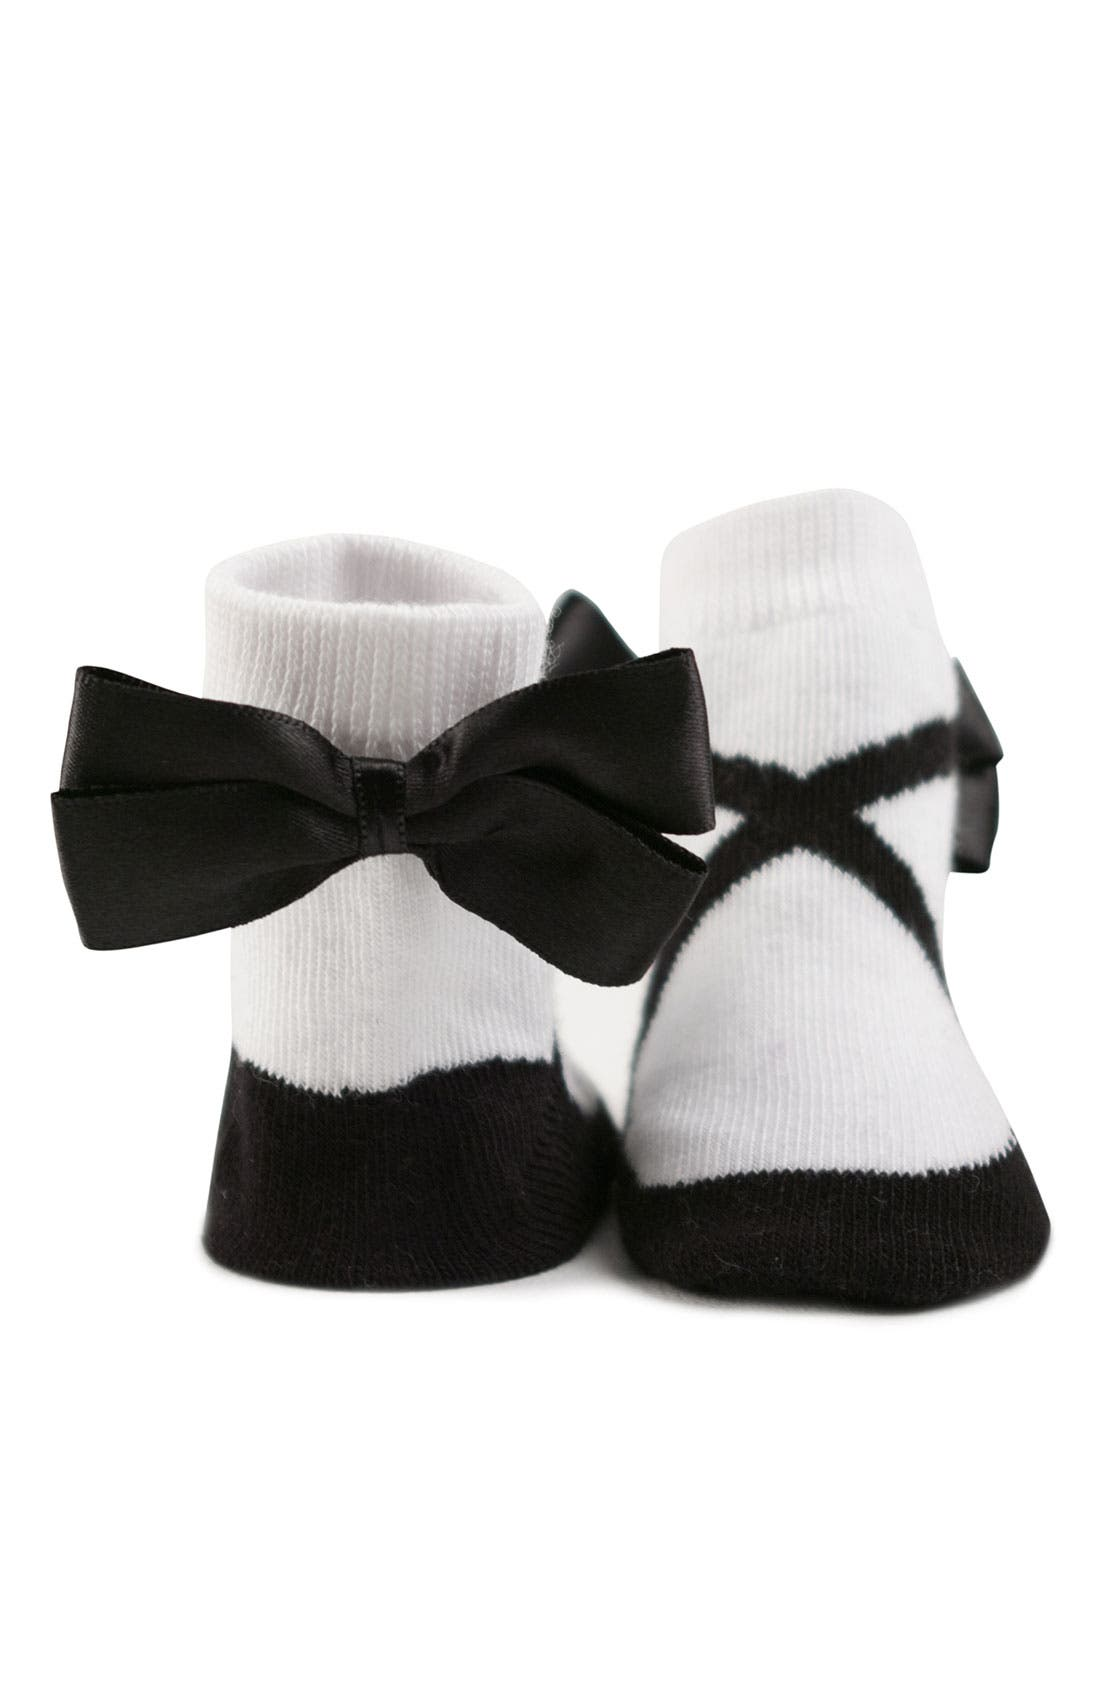 Alternate Image 2  - Trumpette Socks (Baby Girls & Toddler Girls)